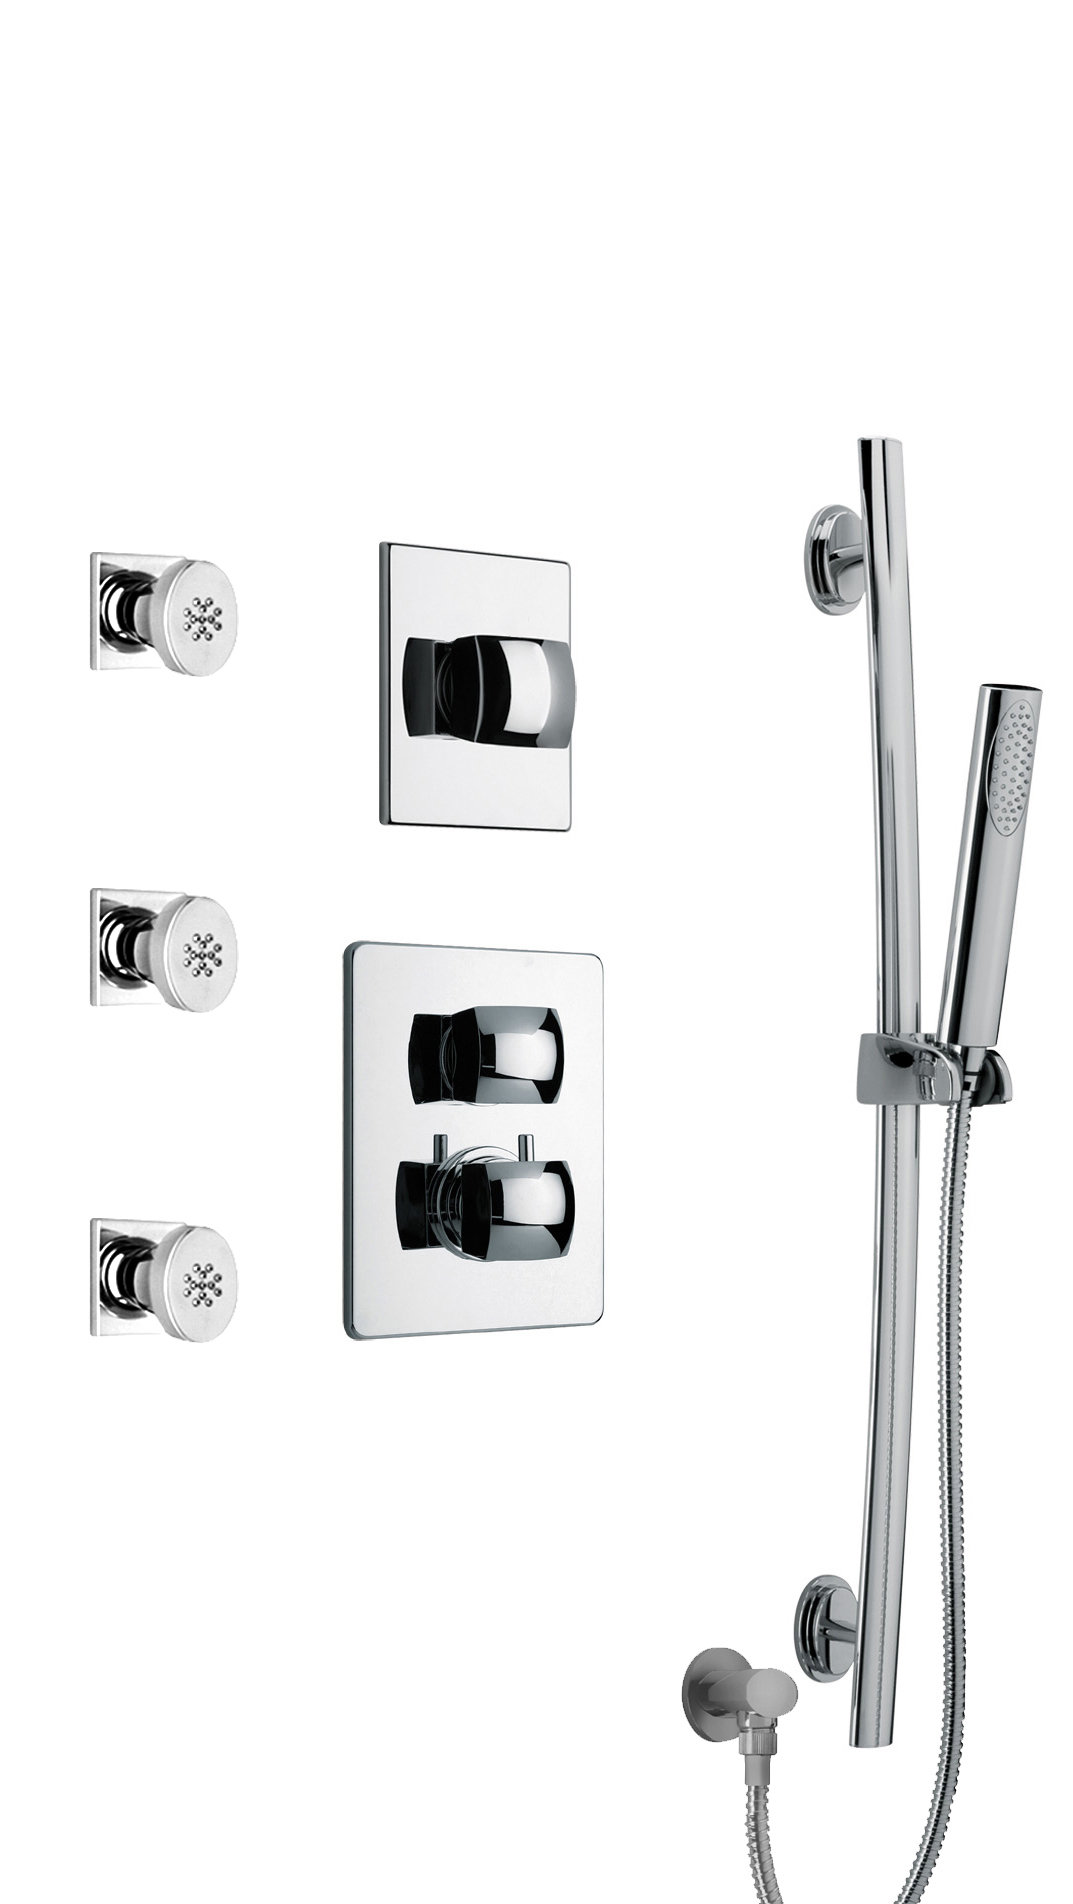 "Thermostatic Shower With 3/4"" Ceramic Disc Volume Control, 3-Way Diverter, Slide Bar. 3 Body Jets in Chrome Finish"